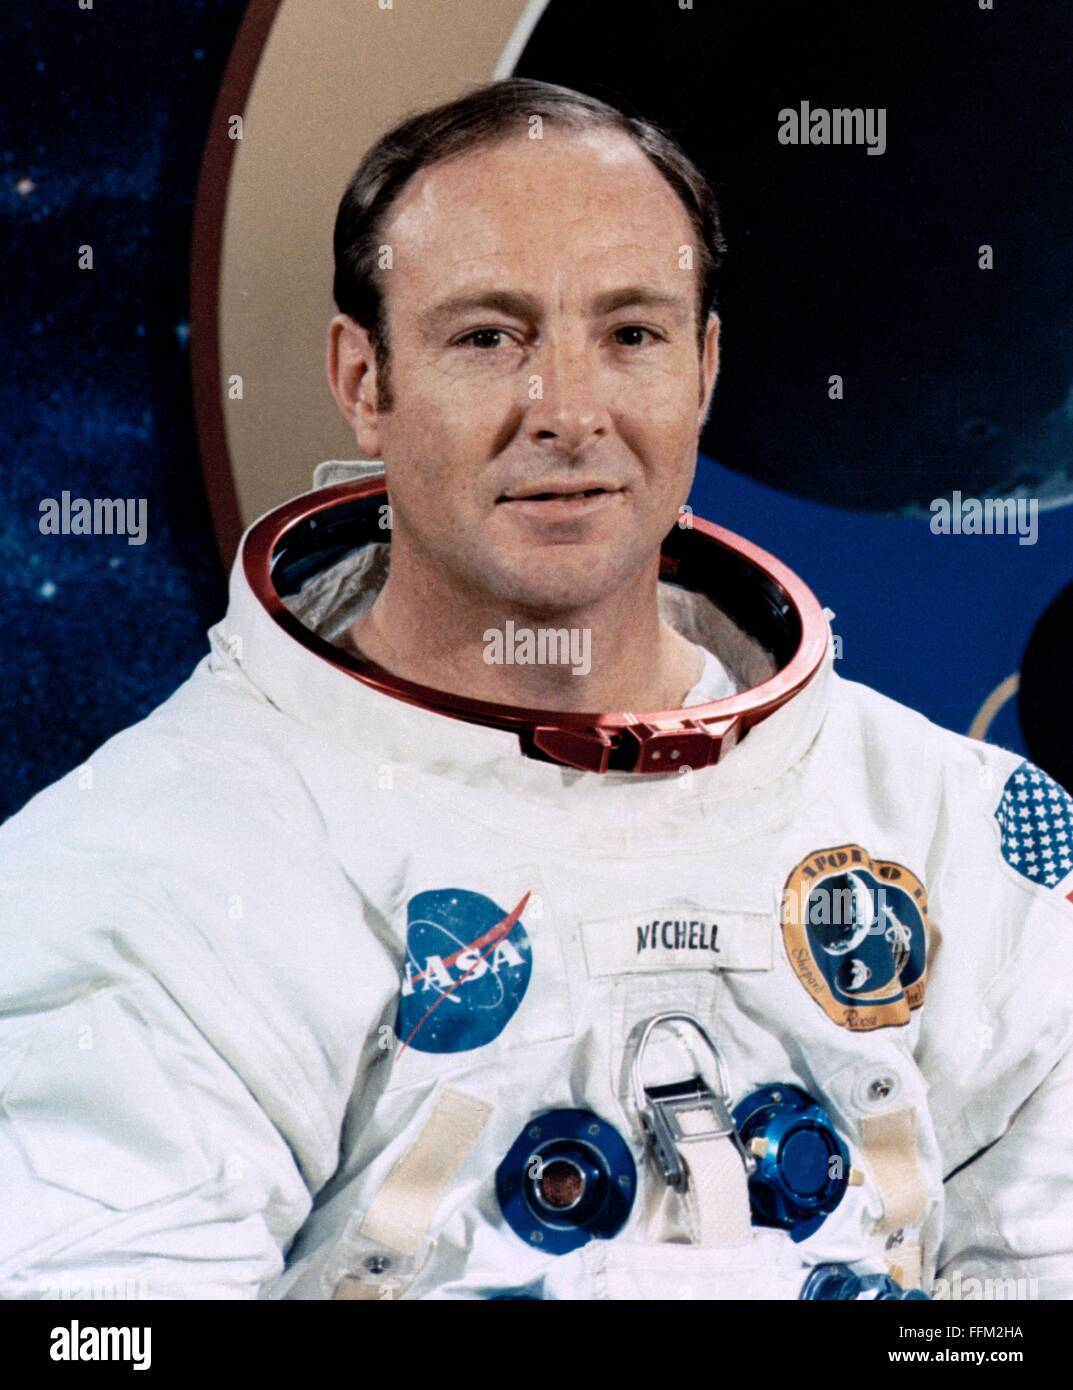 Portrait de l'alunissage d'Apollo 14 mission pilote du module lunaire et de l'astronaute Edgar D. Mitchell Photo Stock